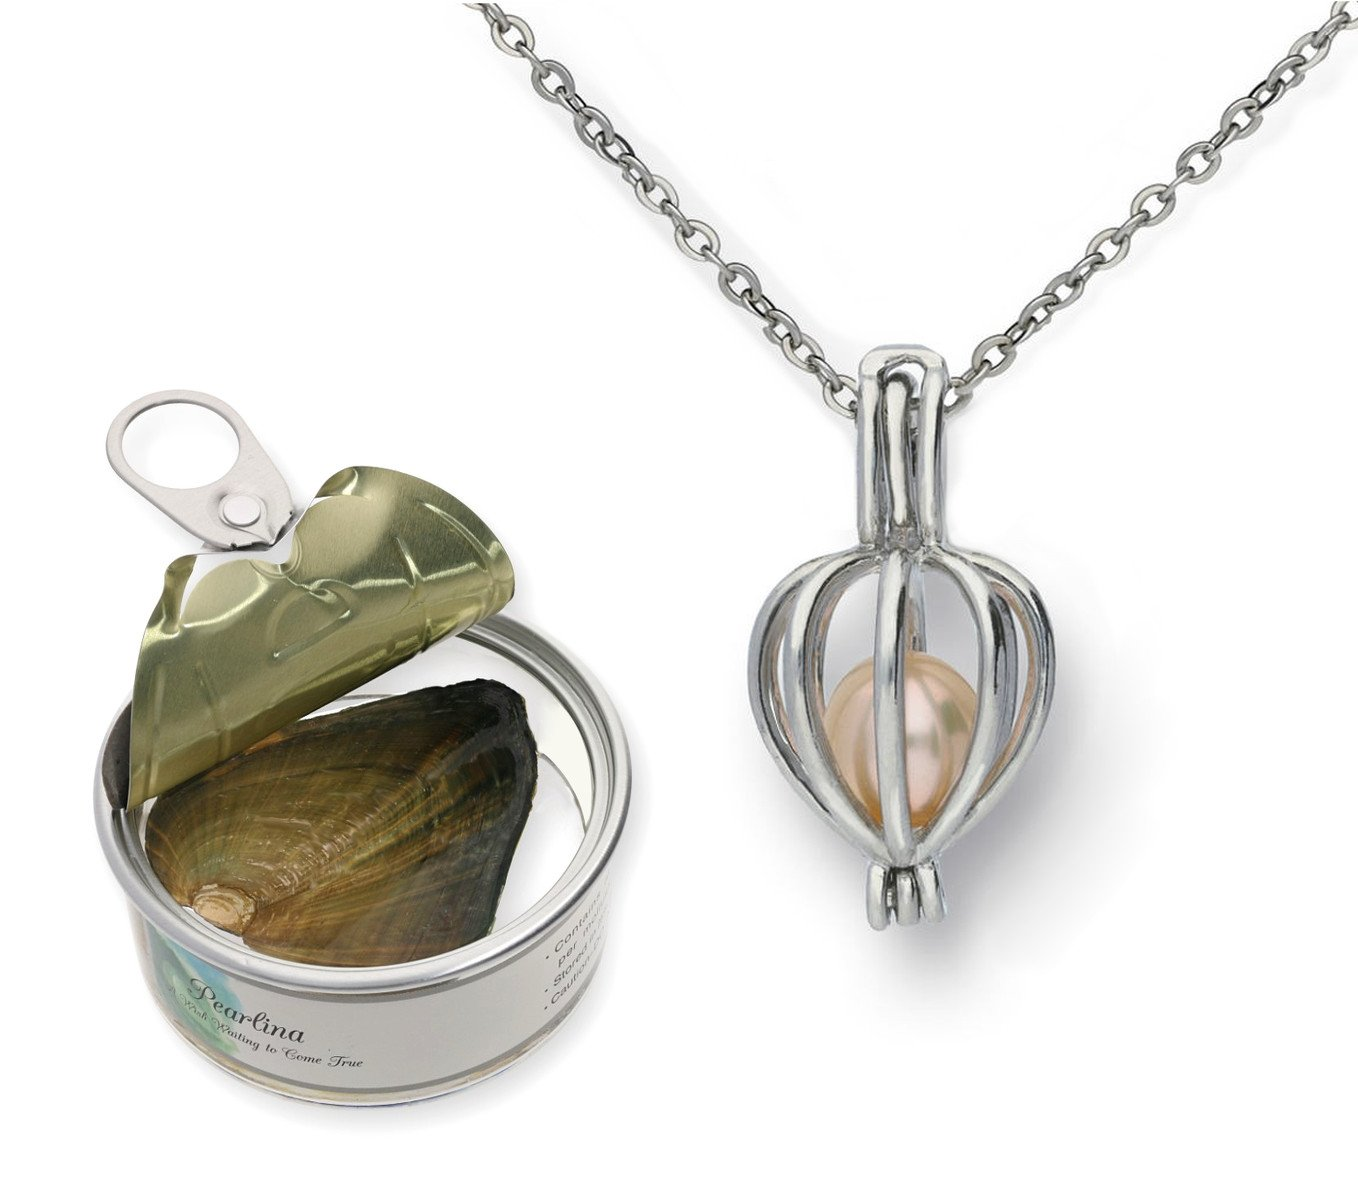 Pearlina Heart Cultured Wish Pearl in Oyster Necklace Set Silver tone Plated Cage W/Stainless Steel Chain 18''